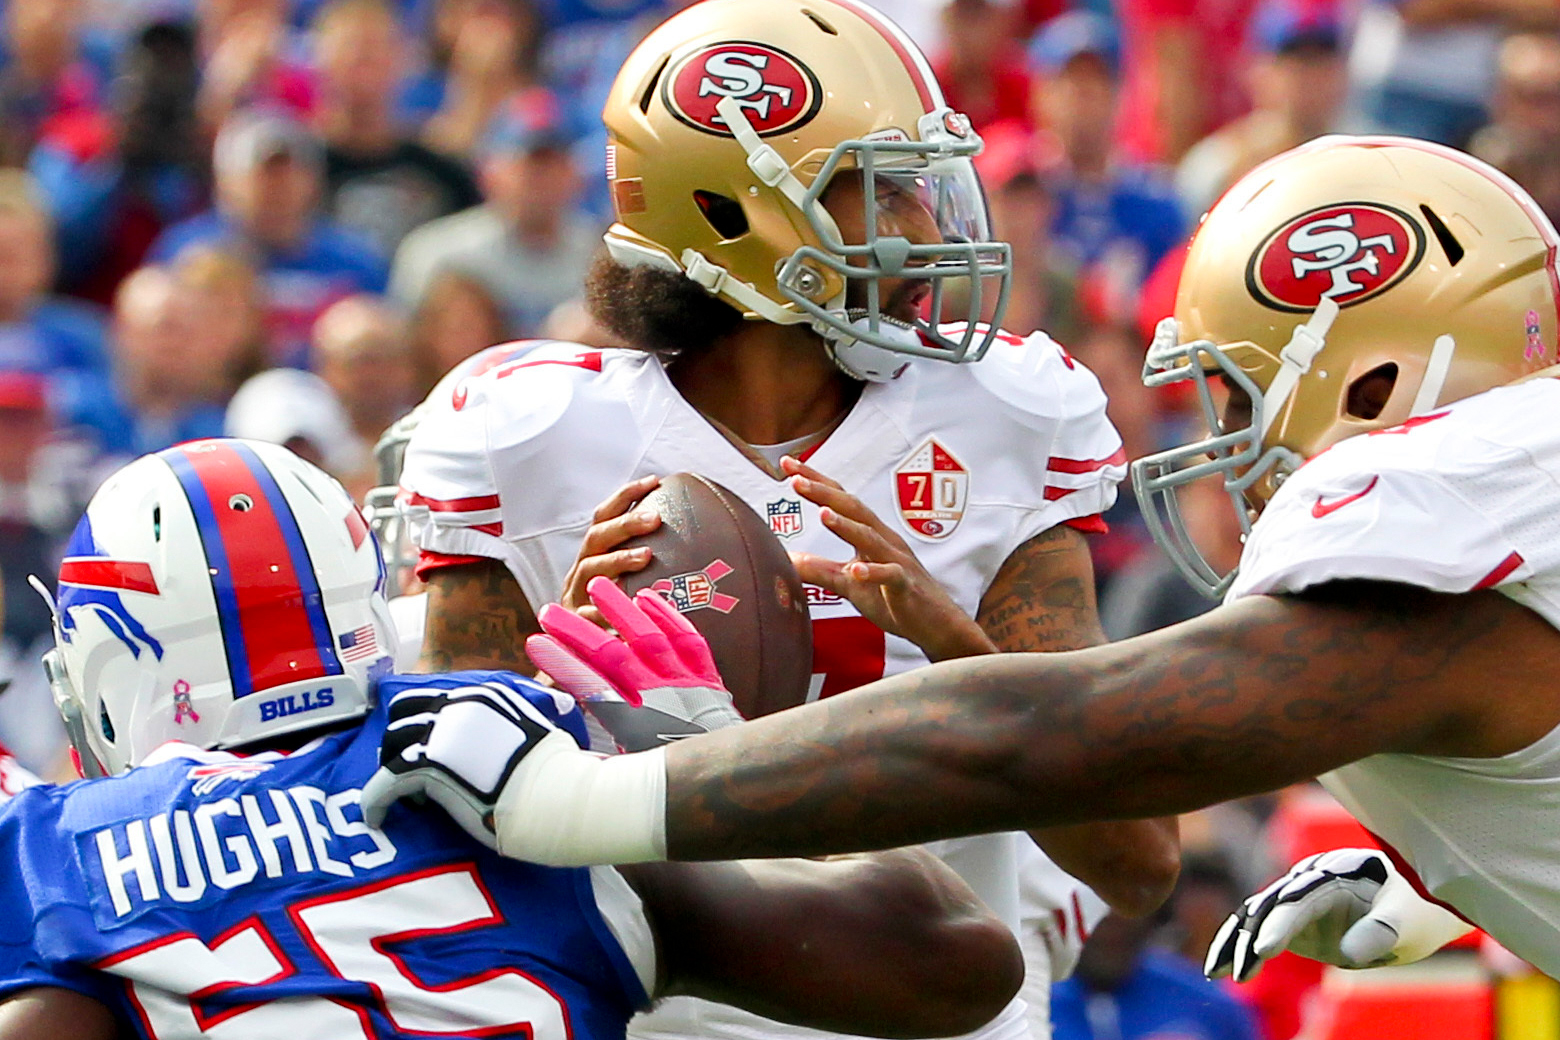 San Francisco 49ers quarterback Colin Kaepernick (7) passes under pressure from Buffalo Bills outside linebacker Jerry Hughes (55) during the first half of an NFL football game on Sunday, Oct. 16, 2016, in Orchard Park, N.Y.